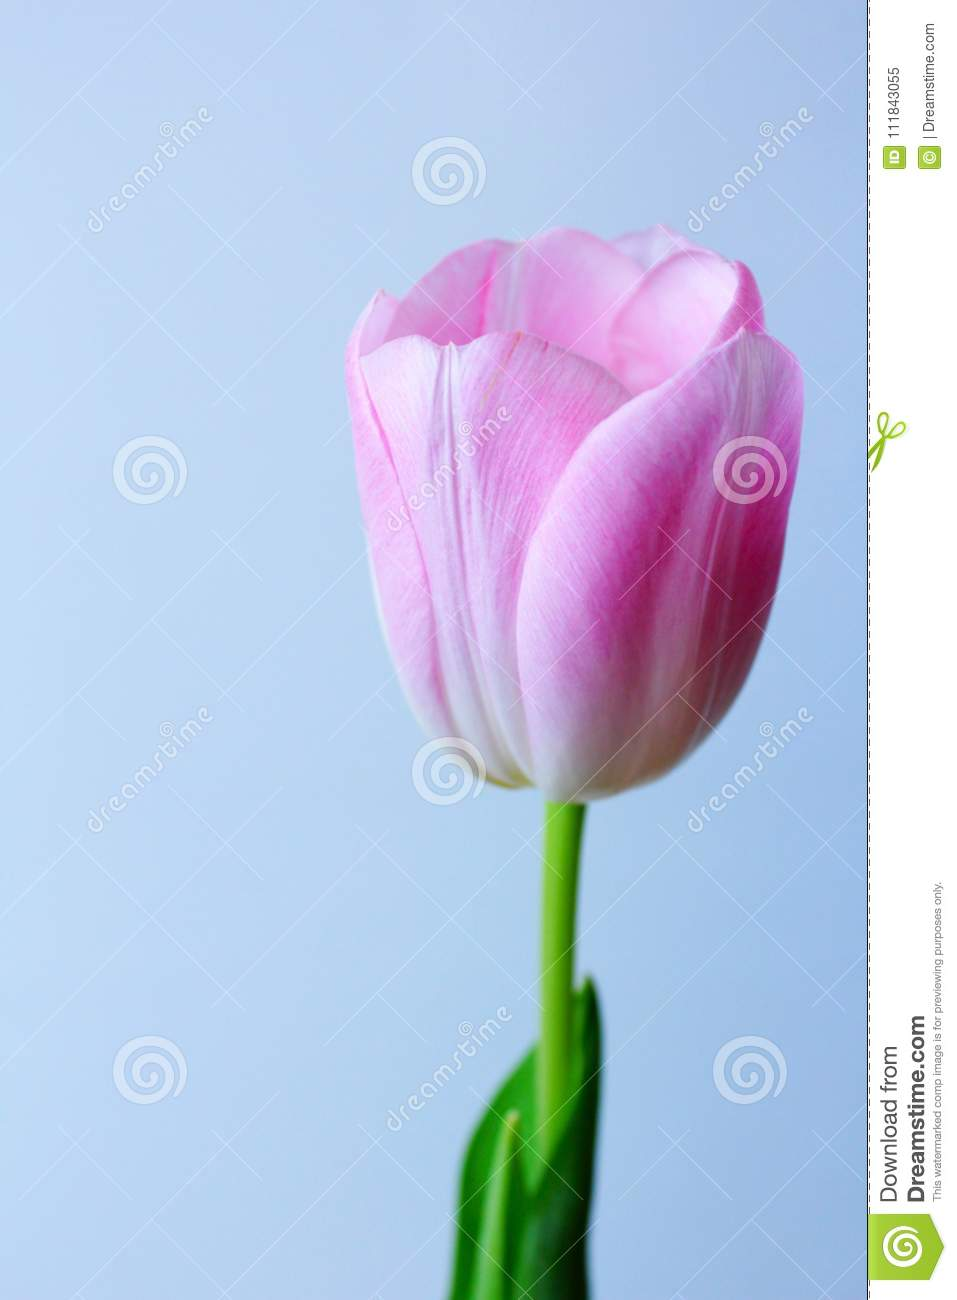 Spring Flower Light Pink Tulipllow Core Delicate Pink Petals Of